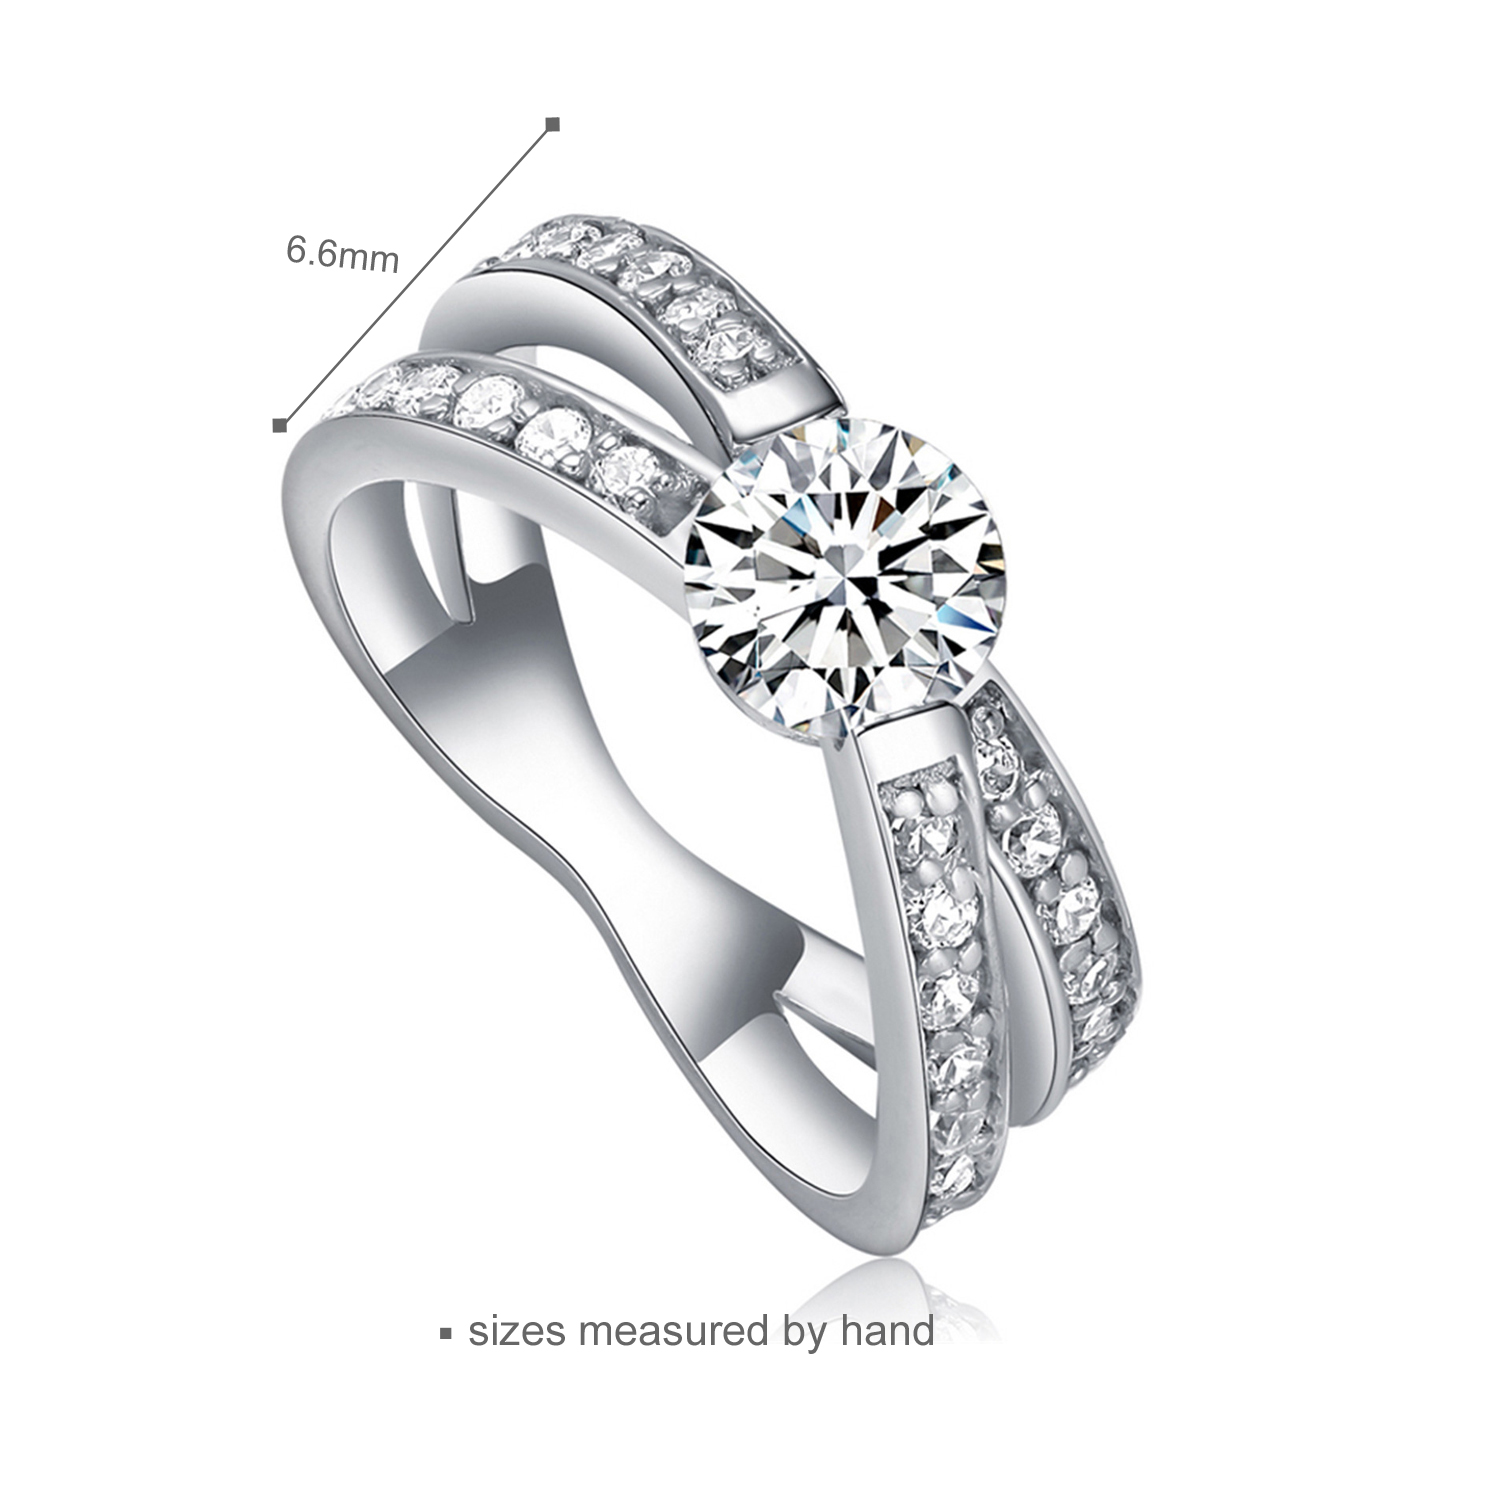 Jewelry Manufacturer wedding engagement rings  Sterling Silver Round Ring Set (图2)